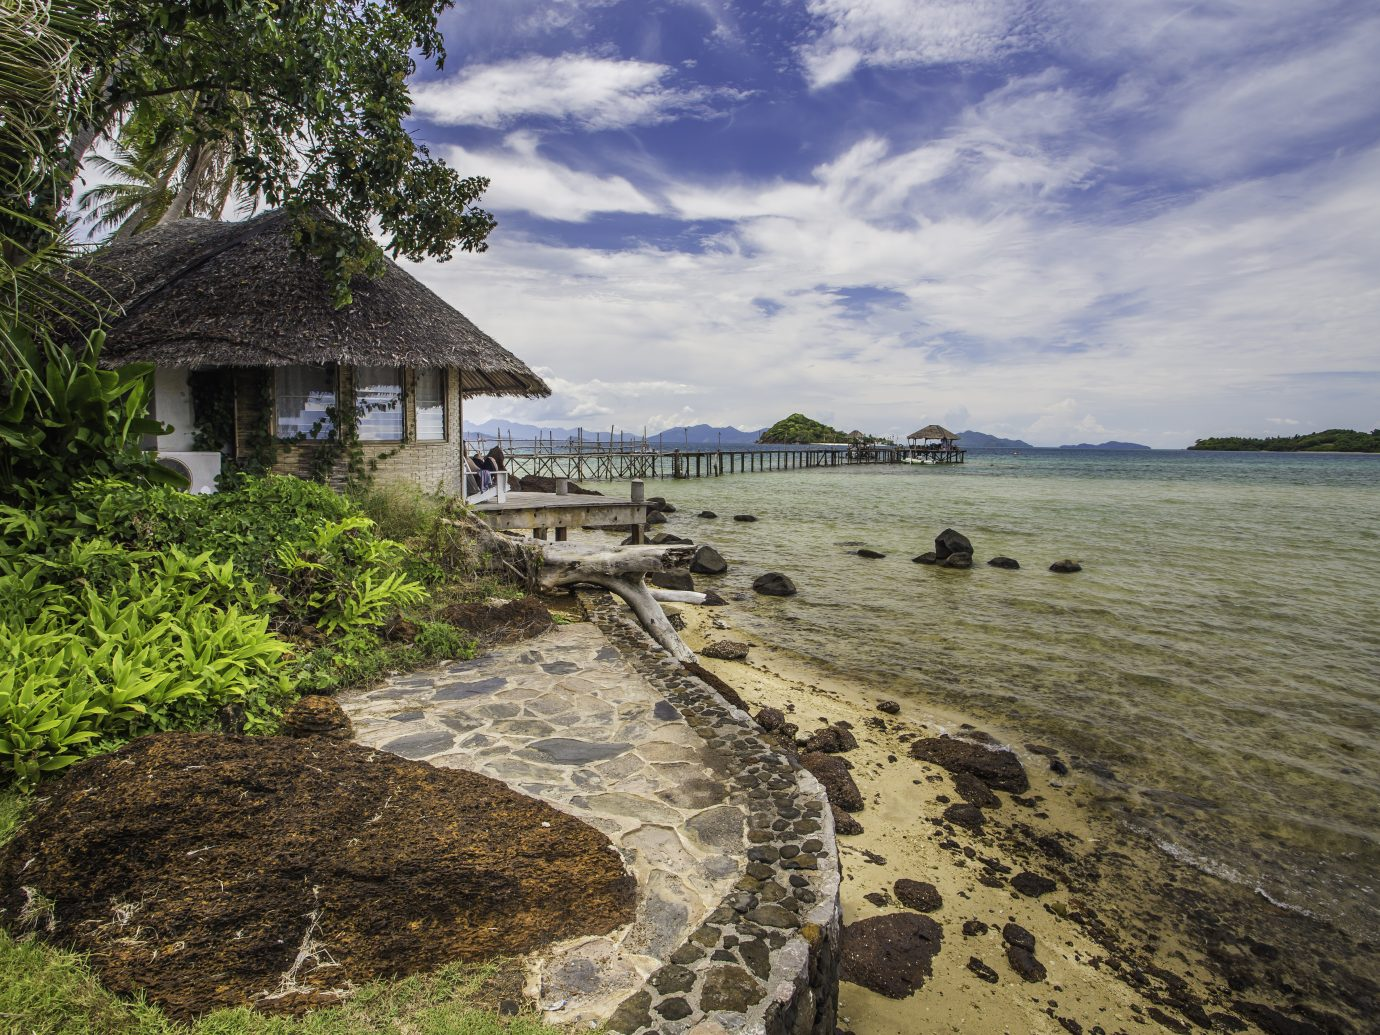 Bungalow with sea view from Koh Mak island, Thailand.